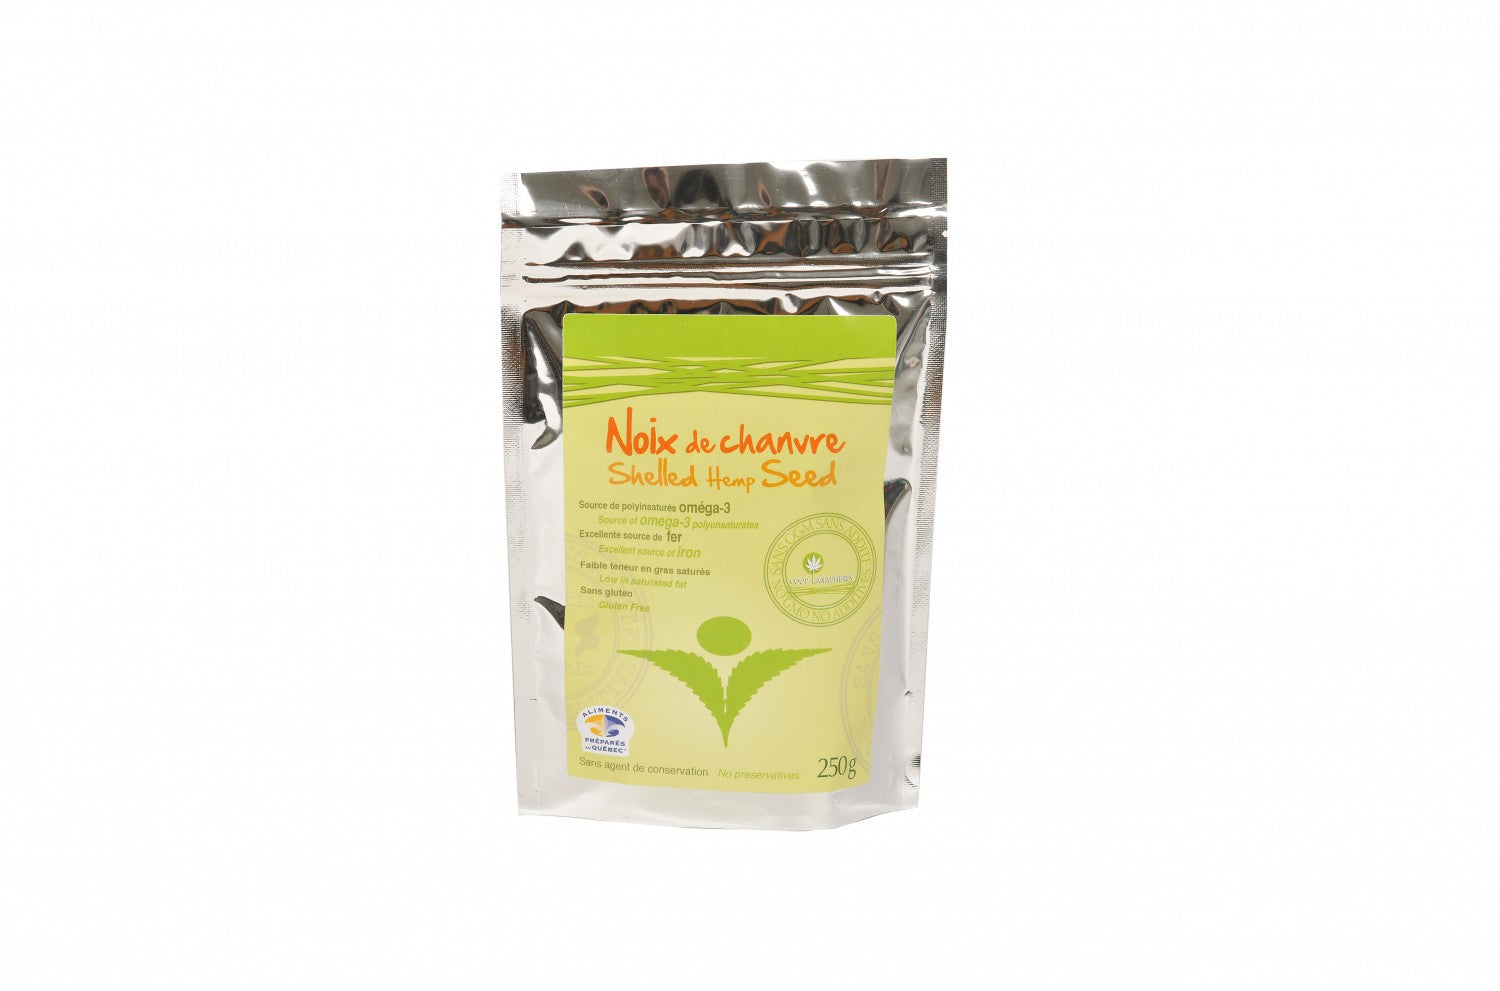 Shelled hemp seed 250 g